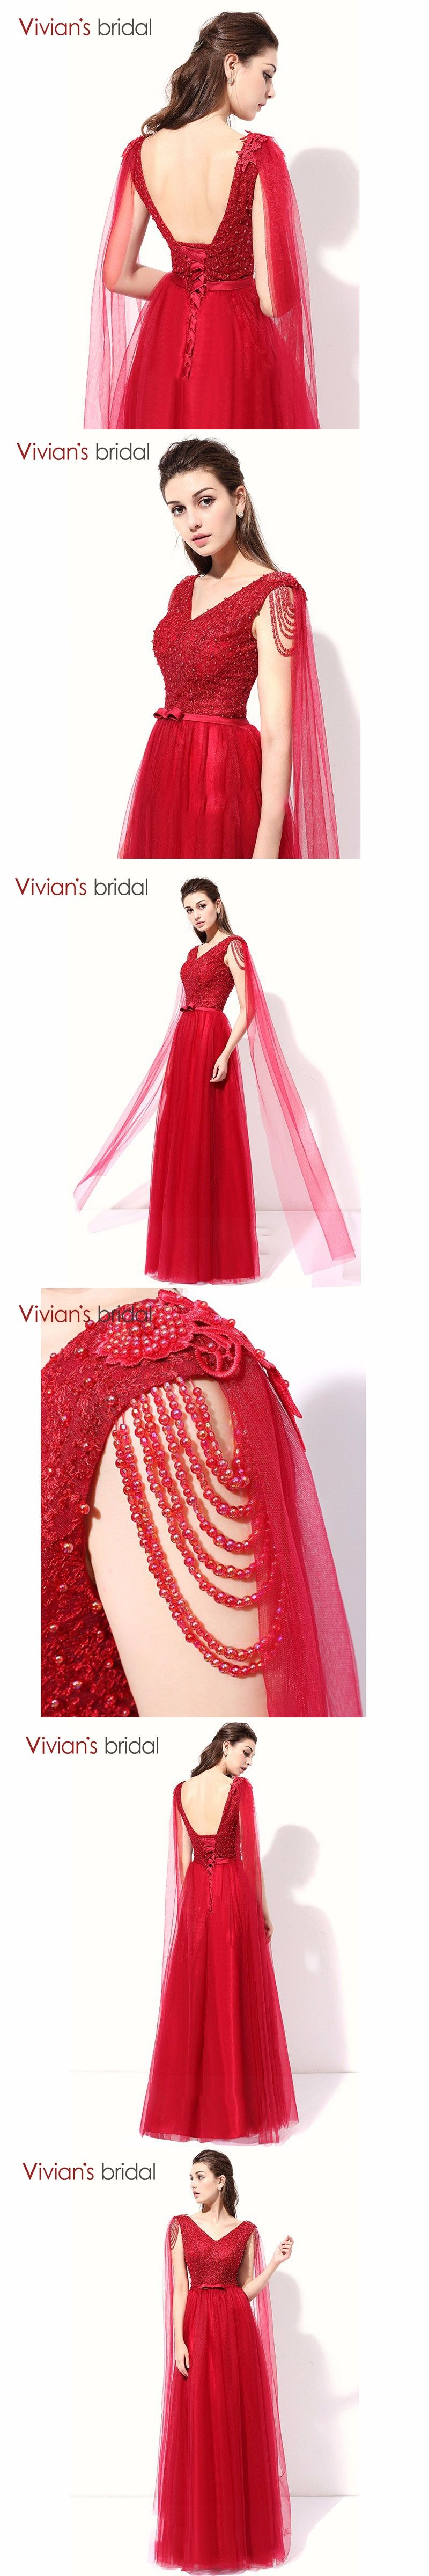 Beaded A Line Evening Dress Long Vivian s Bridal V Neck Sleeveless Evening  Gown Prom Dress Backless beda62506bc7